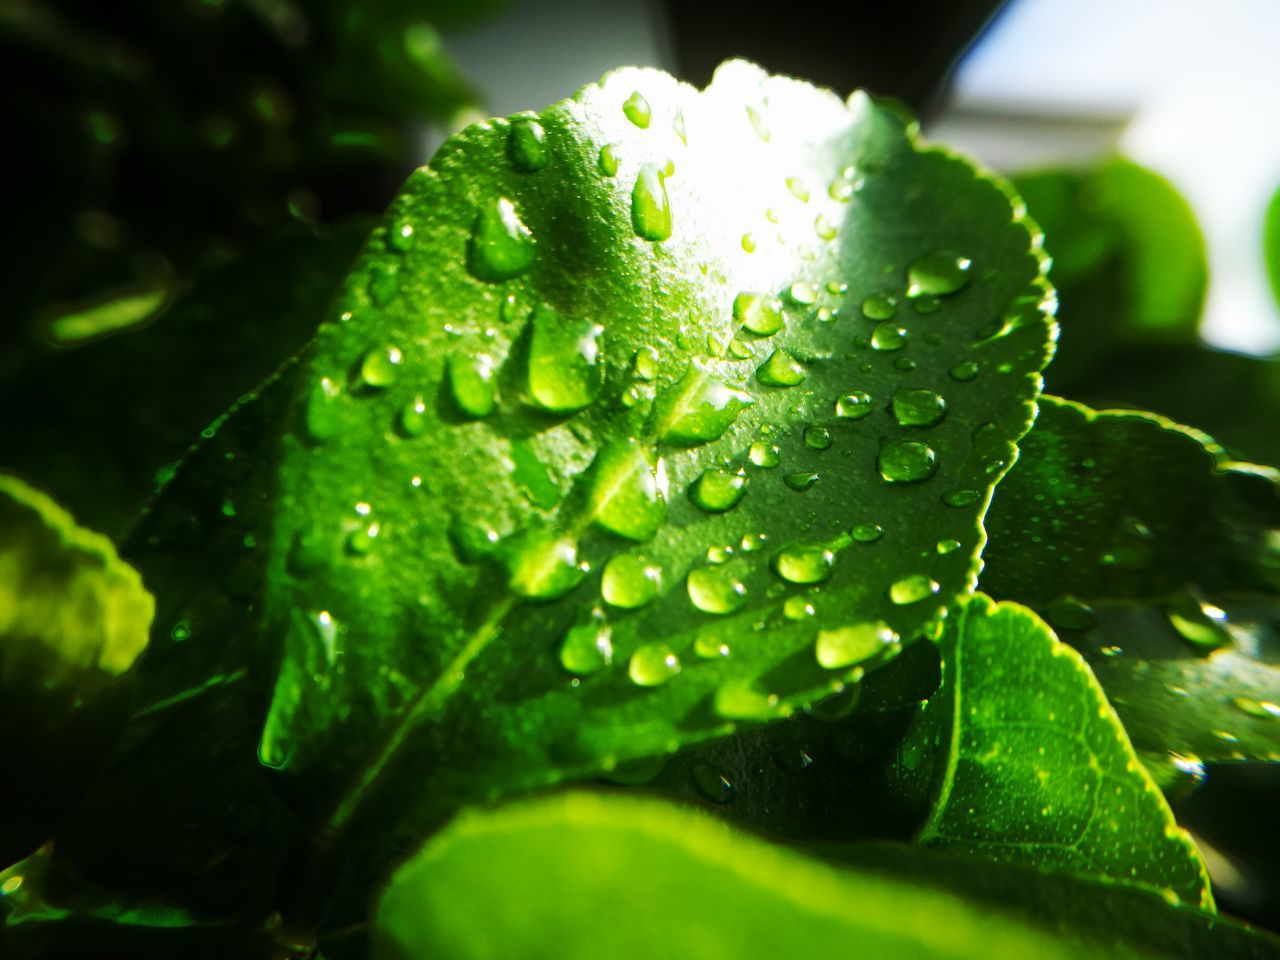 drop, green color, water, leaf, wet, nature, close-up, freshness, no people, growth, raindrop, beauty in nature, day, fragility, plant, outdoors